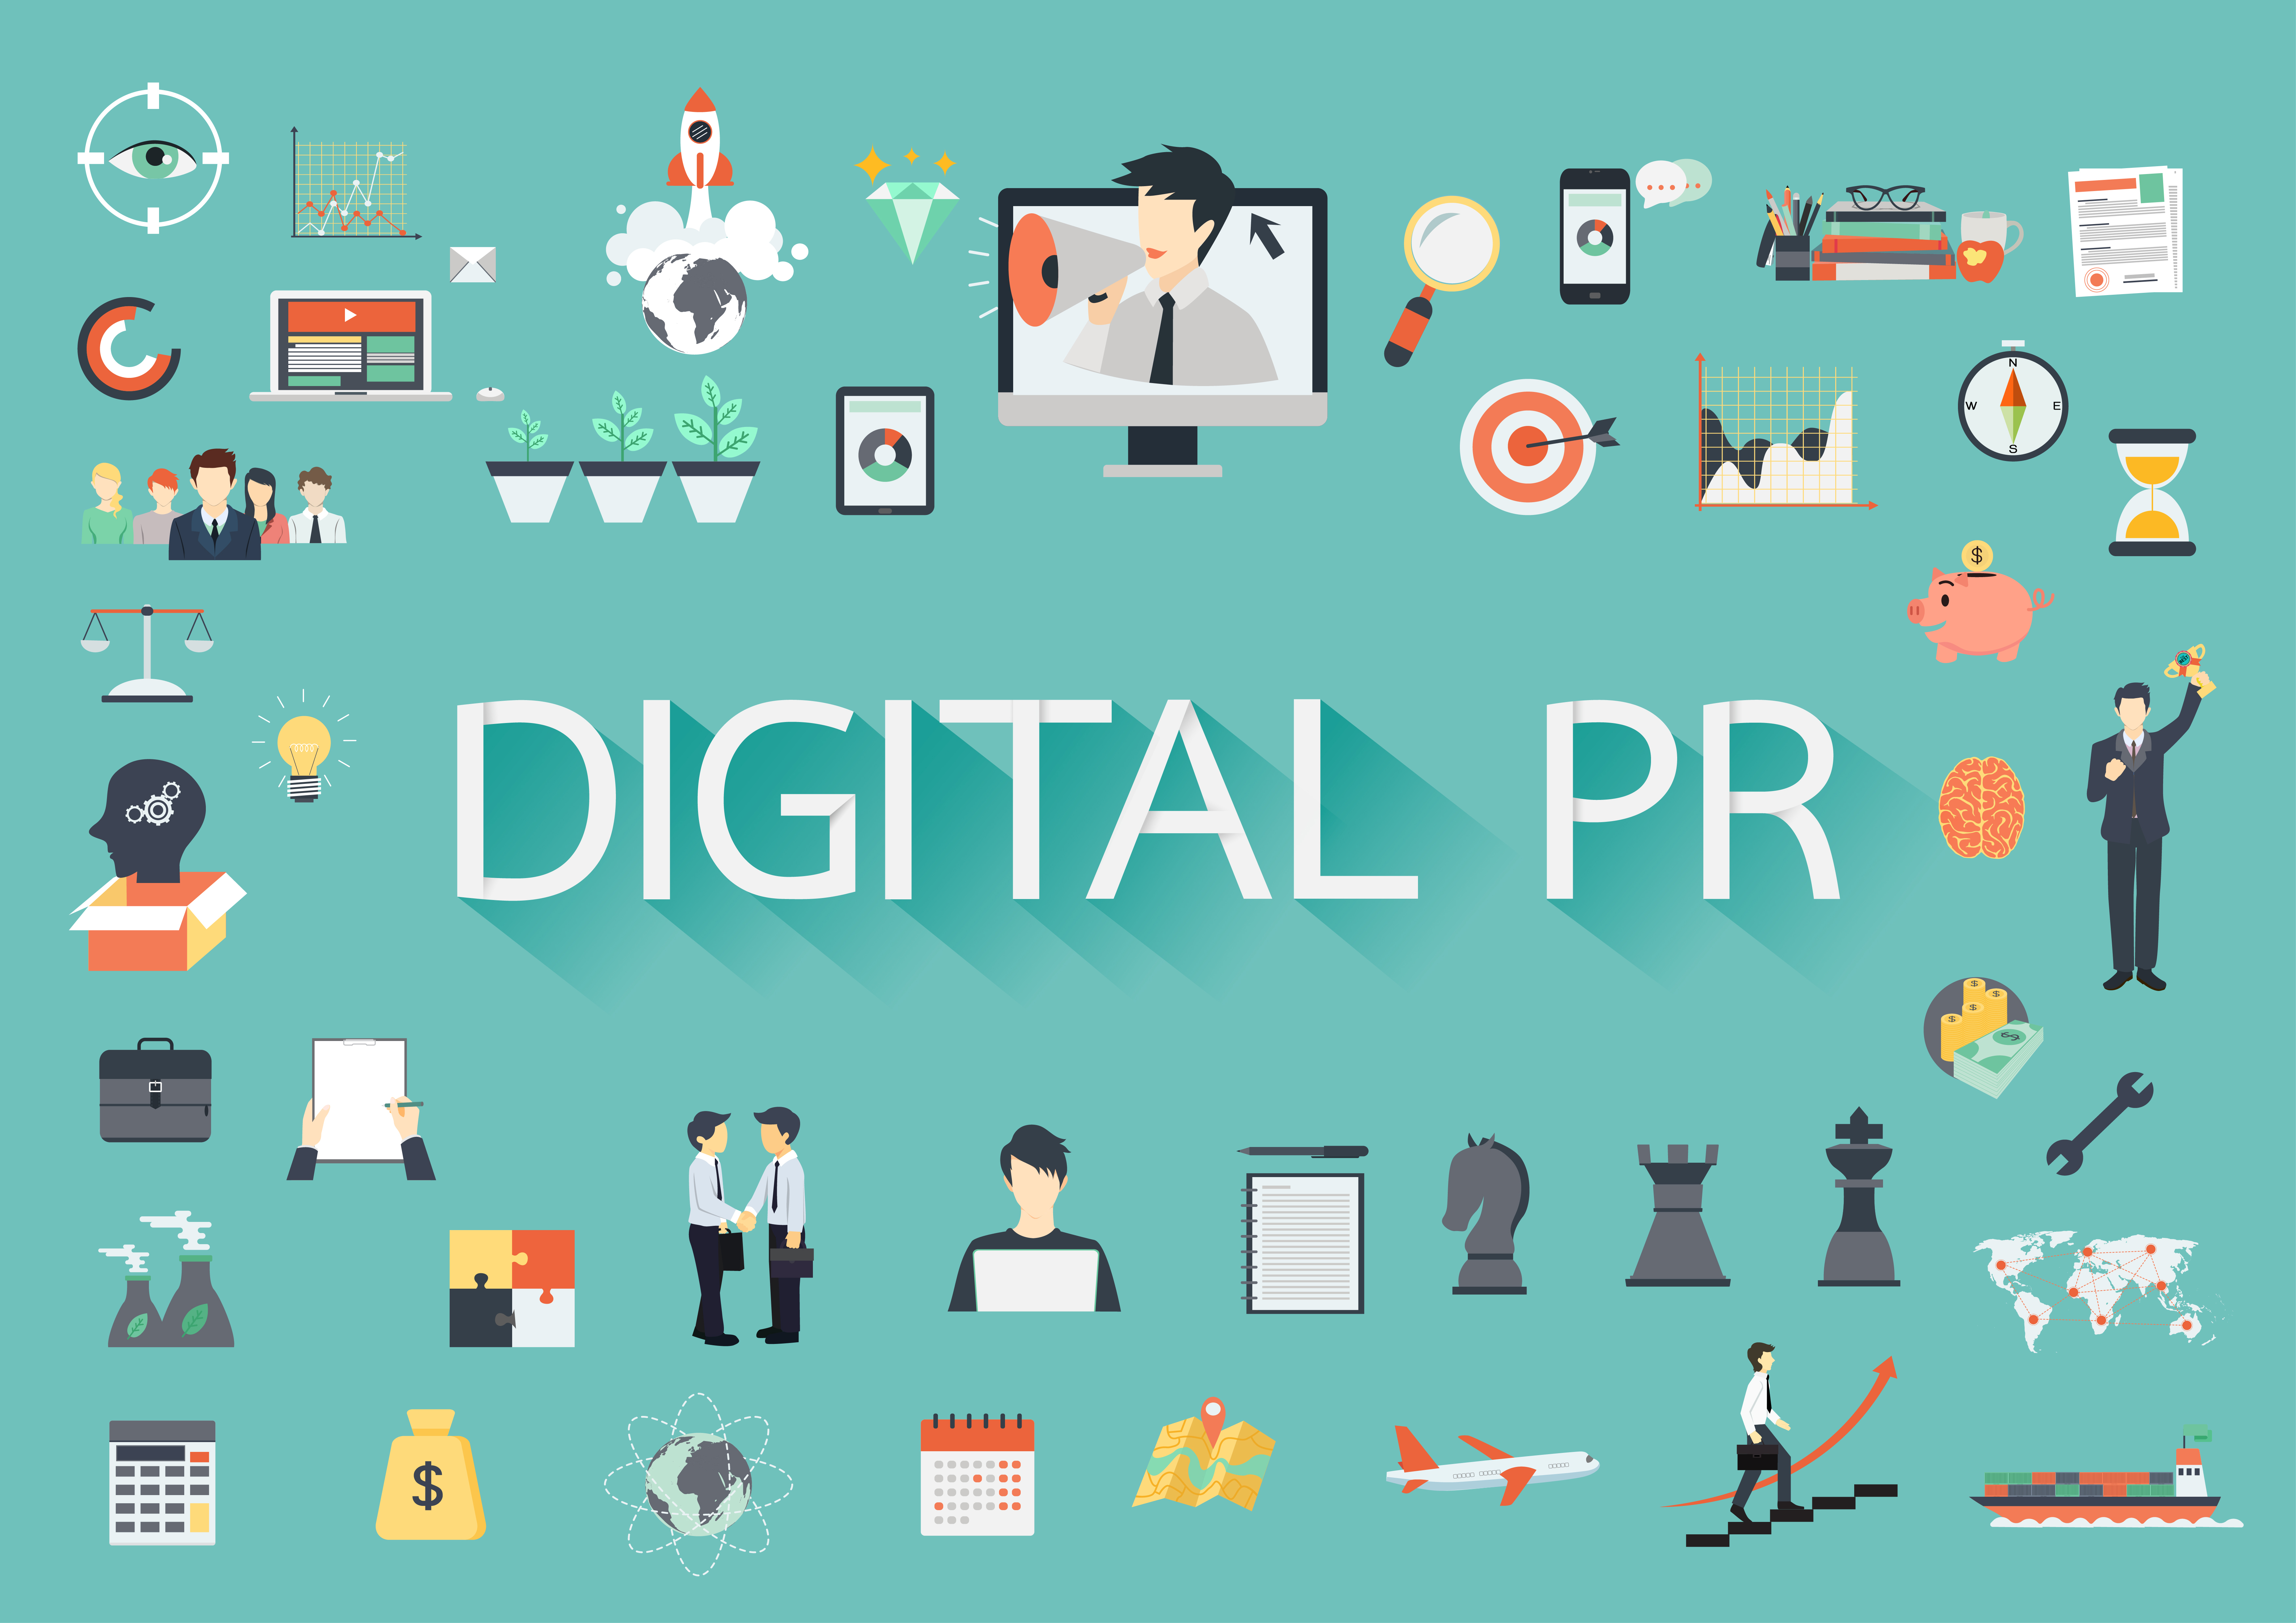 digital pr tools